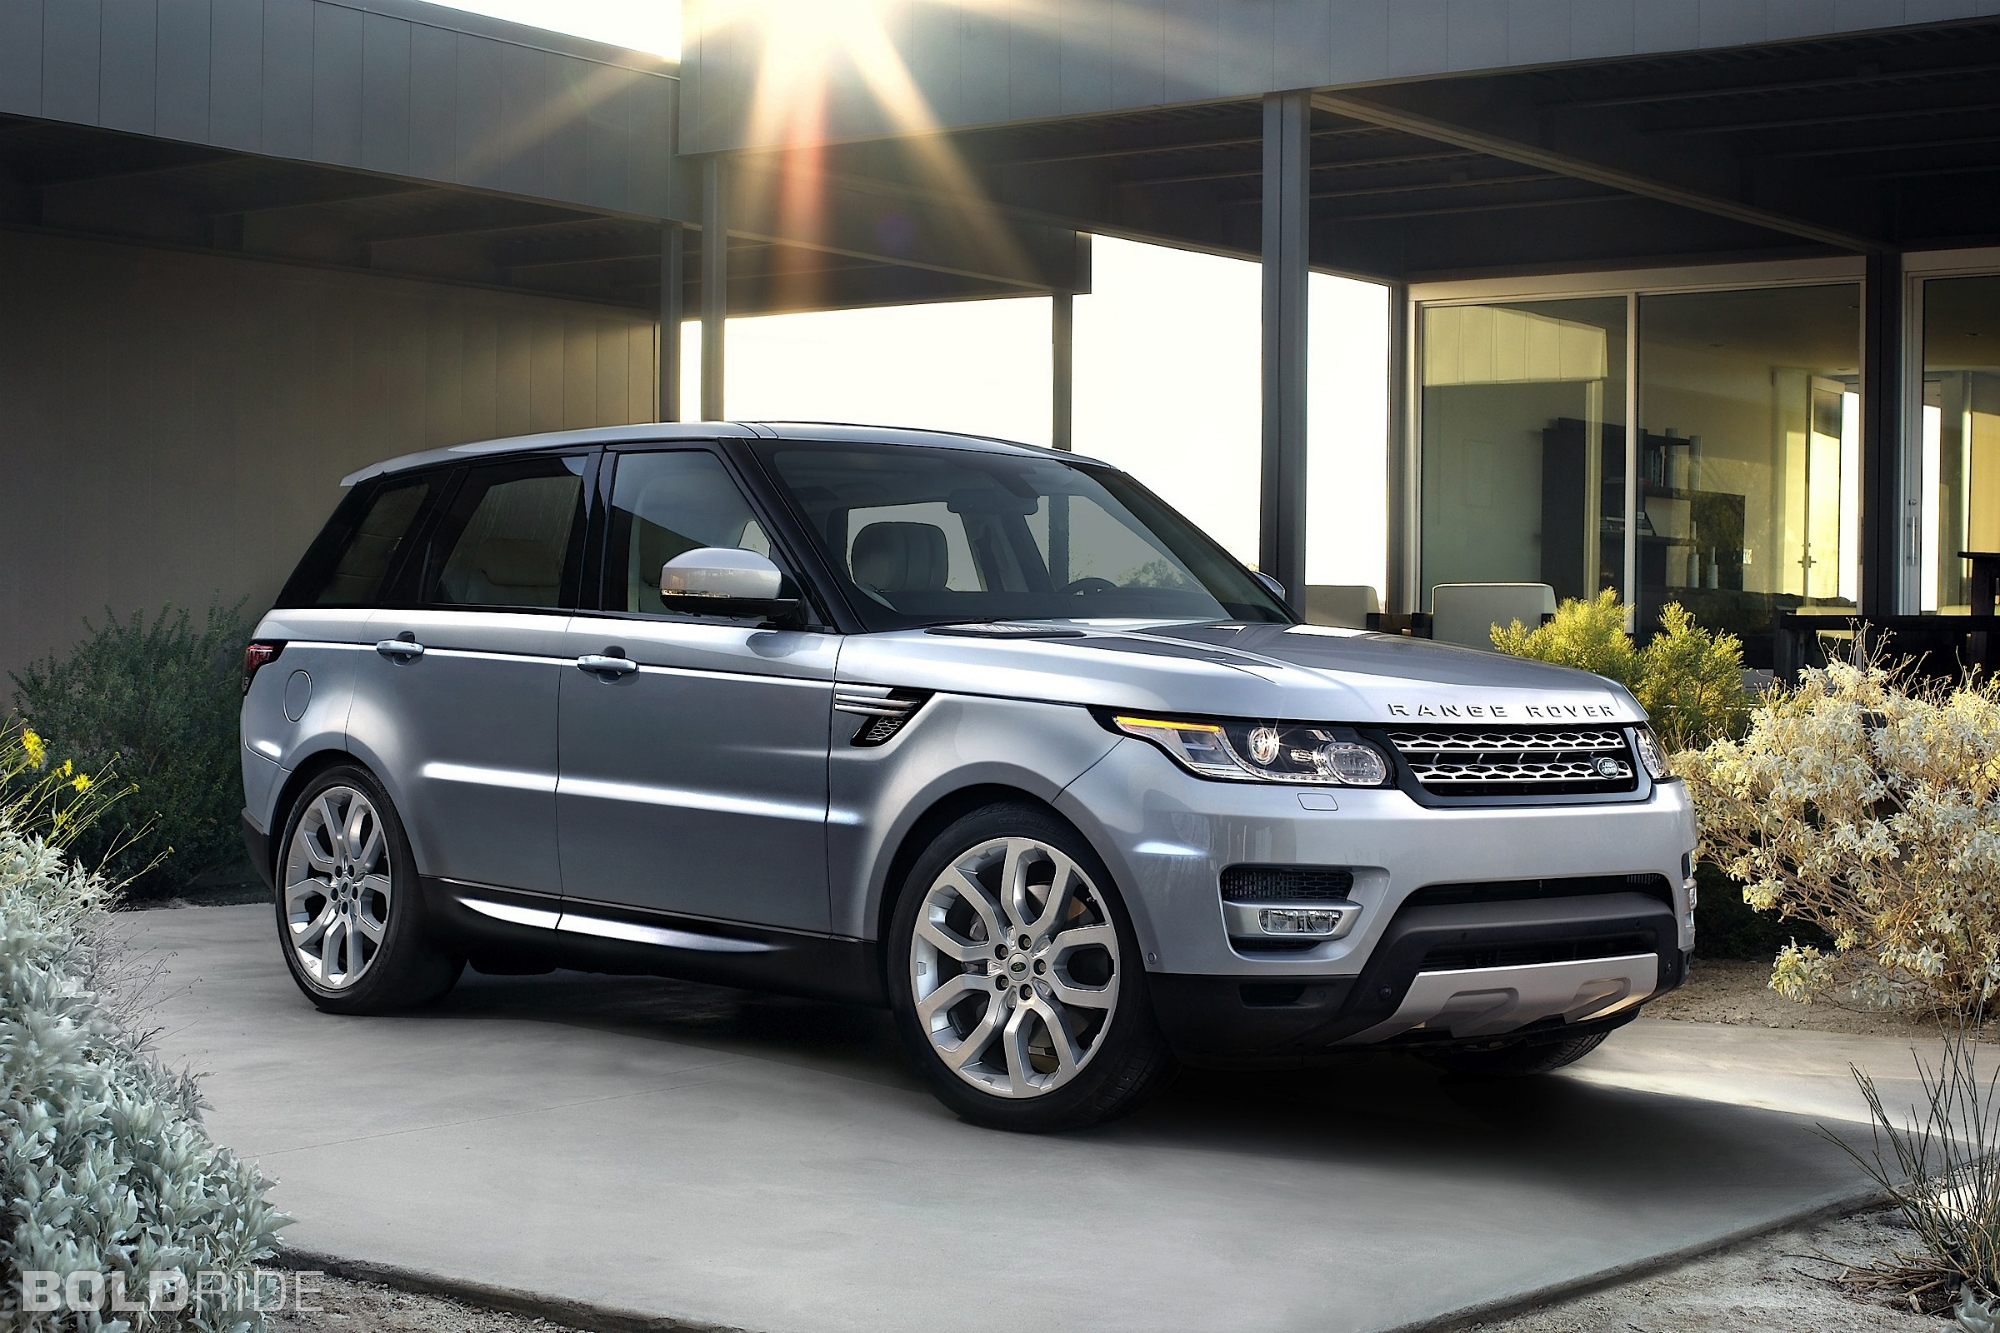 2014 LAND ROVER RANGE ROVER SPORT Image 15